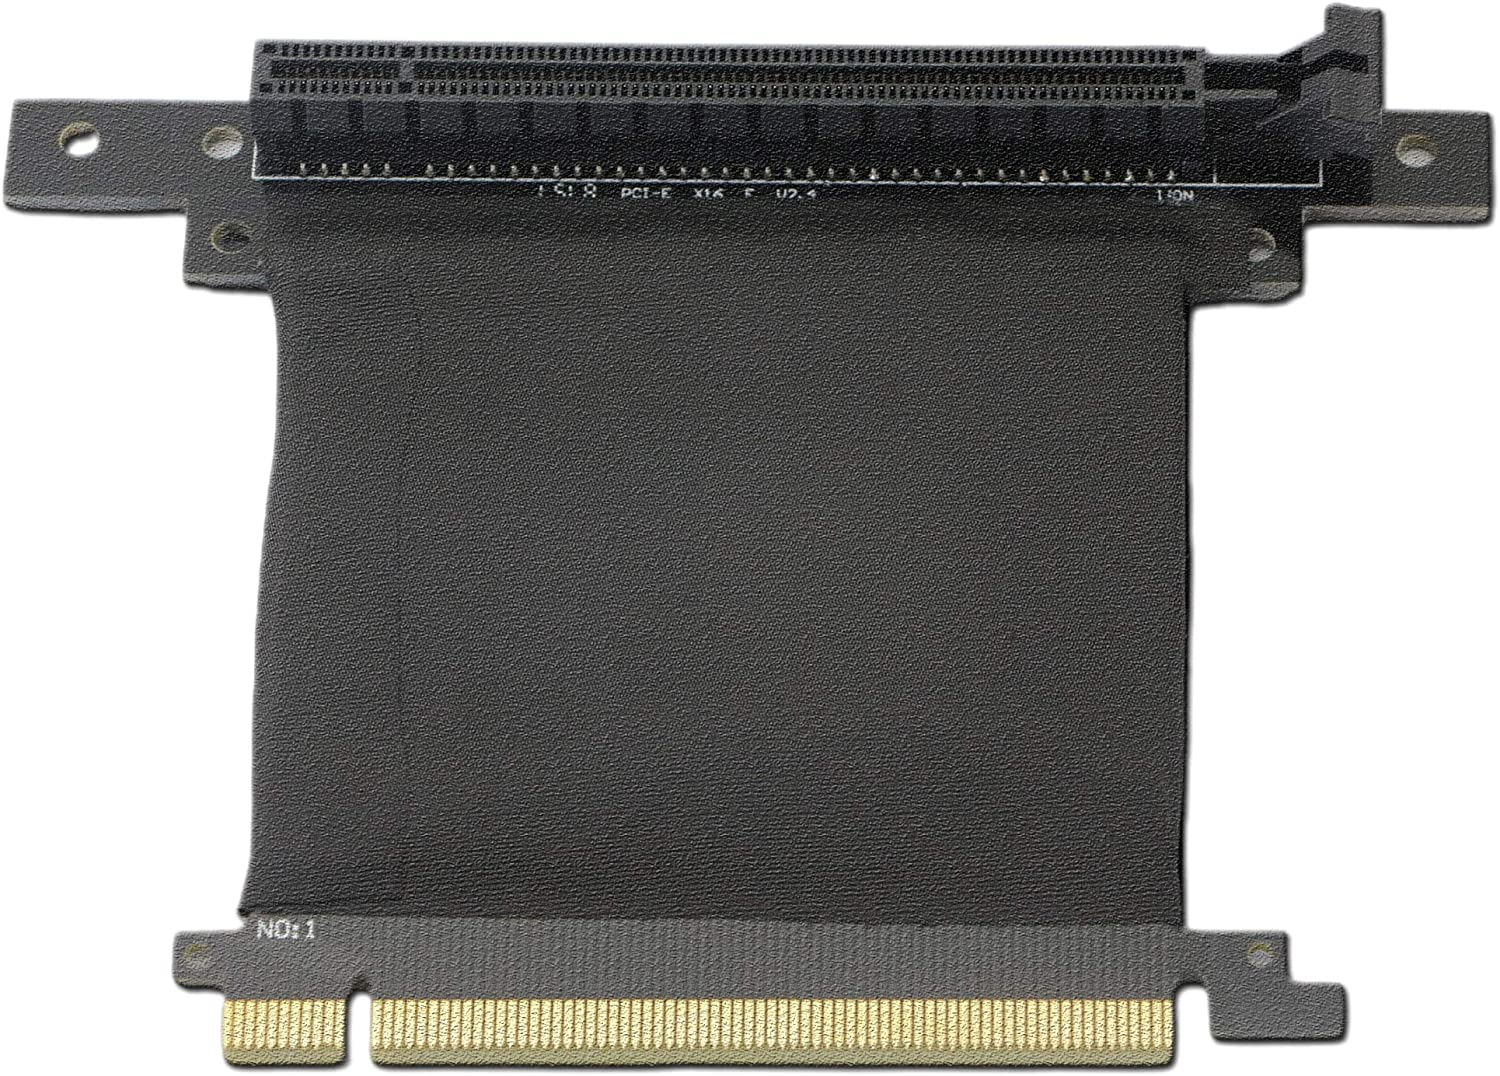 GINTOOYUN Pci-E 16x Riser Card PCI Cab 3.0 Extension 16X Express Max 54% OFF Selling rankings